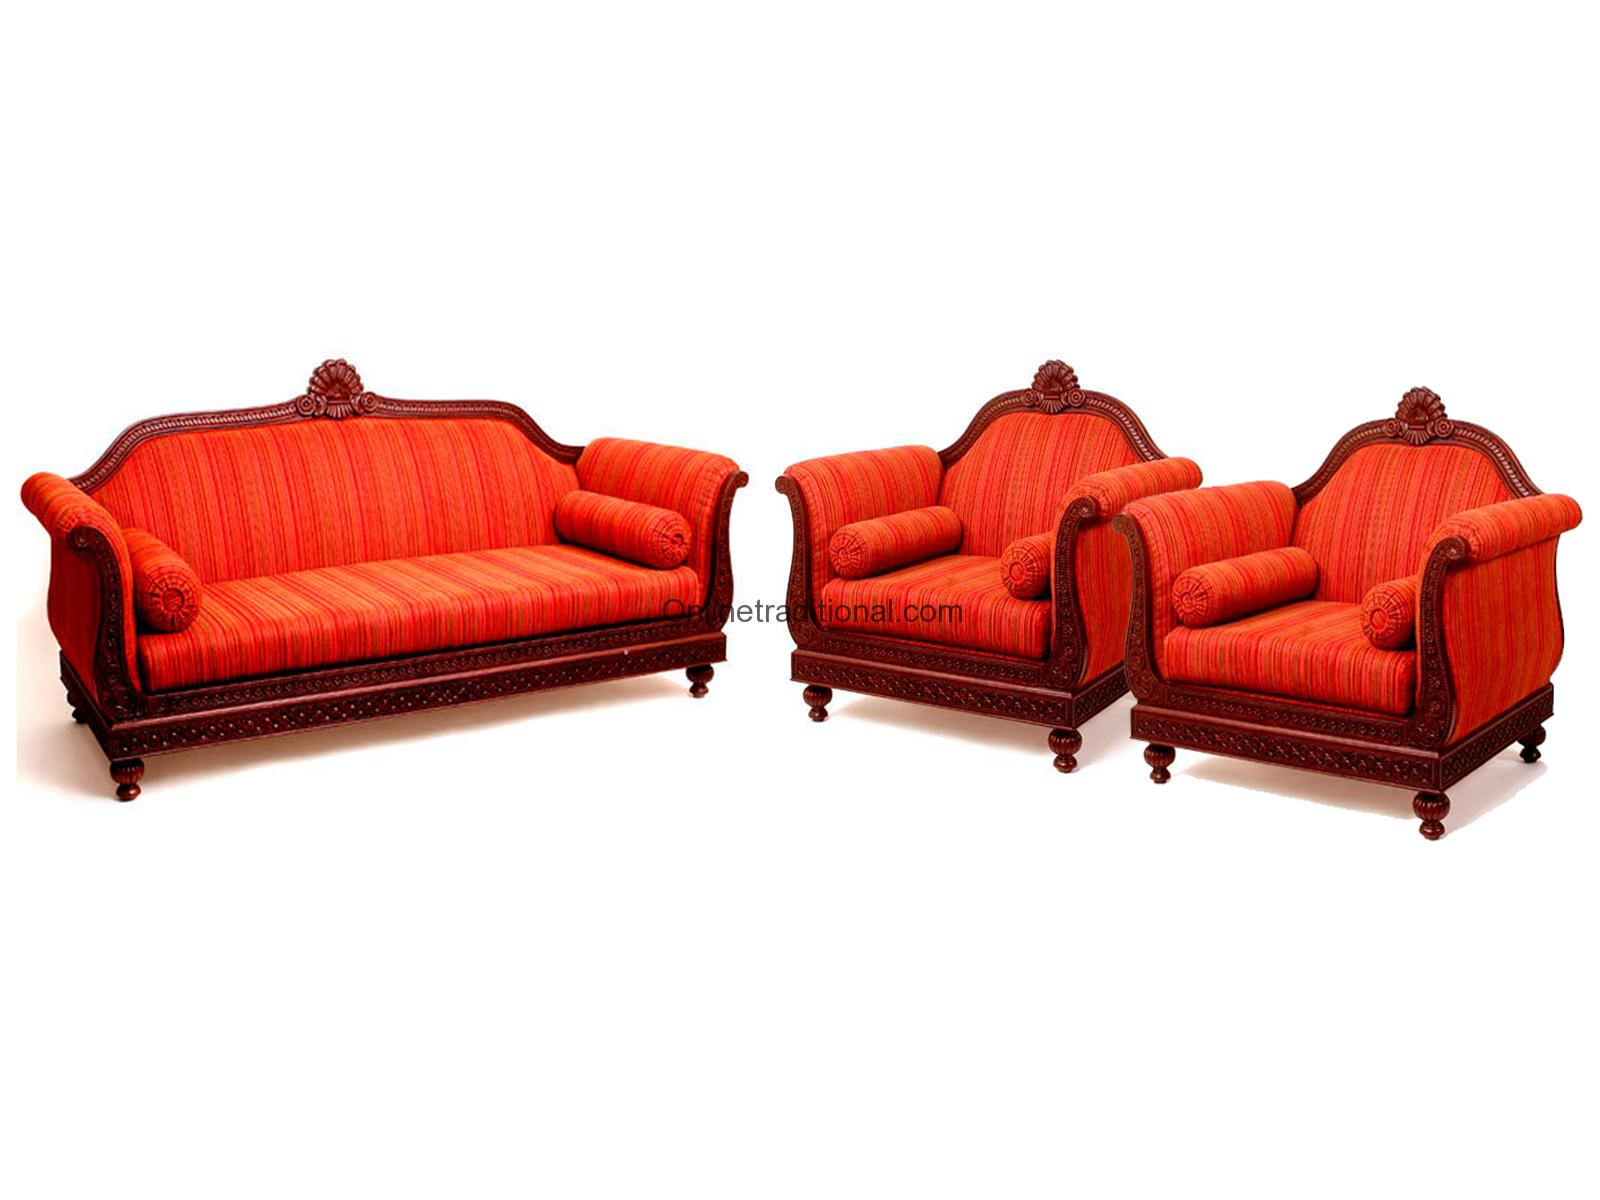 sofa set designs for indian homes cushion ideas red leather sets teak wood design home pearl handicrafts 018